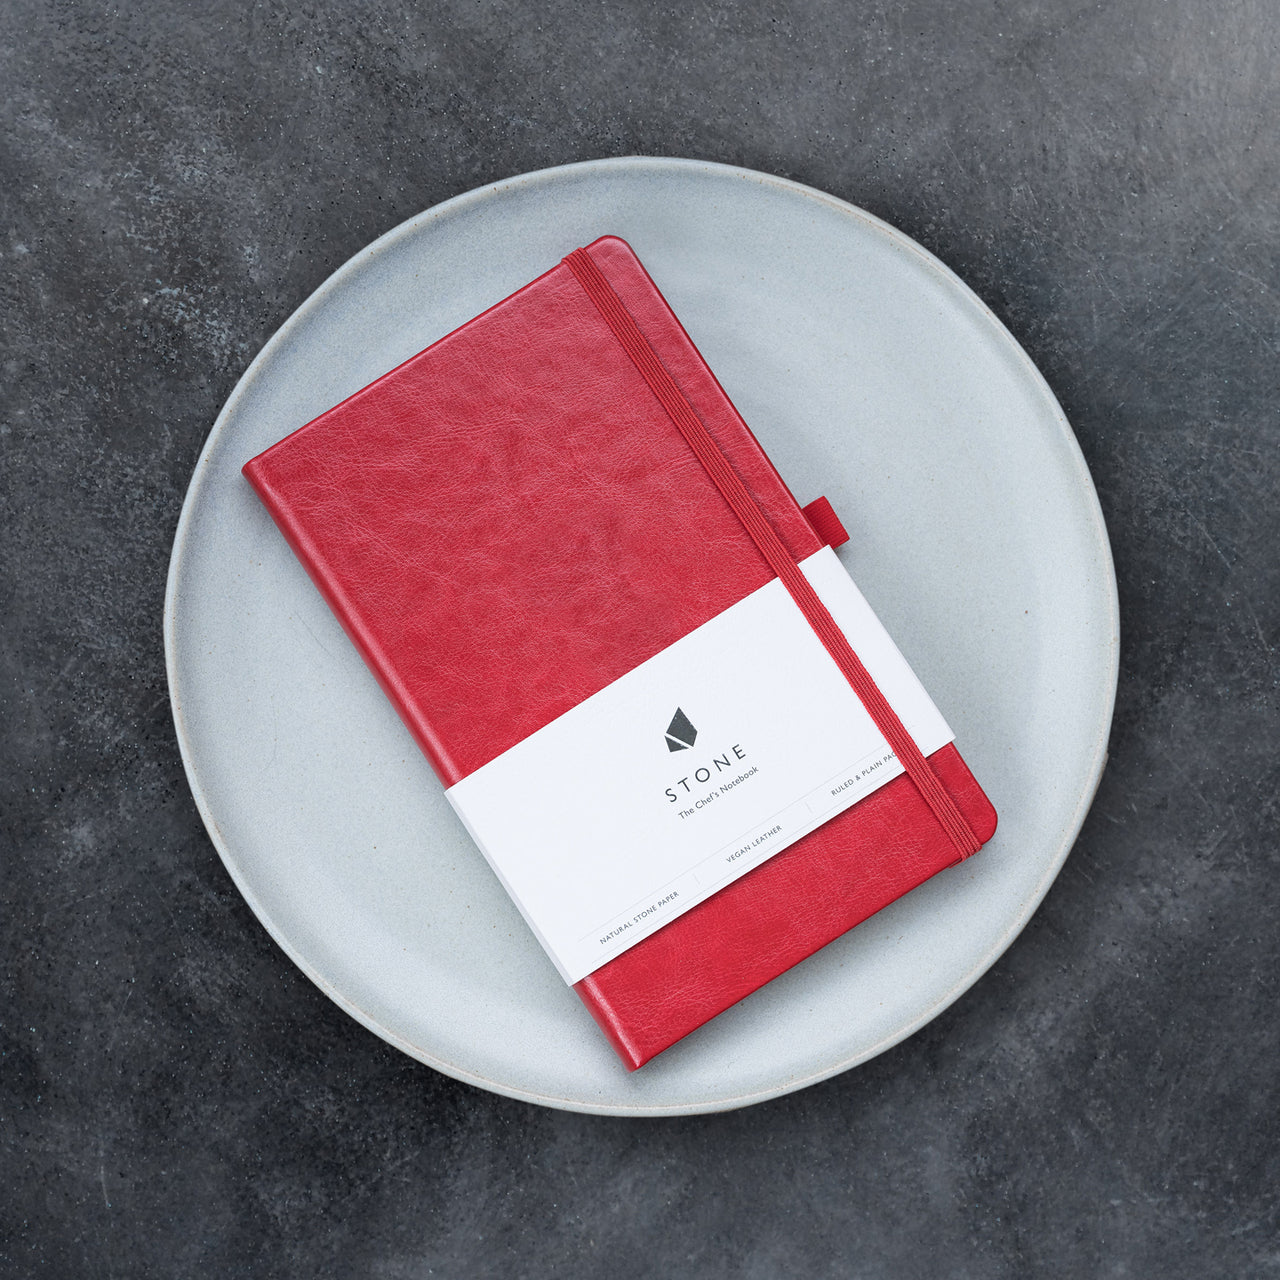 Stone The Chef's Notebook / Pack of 3 / Red